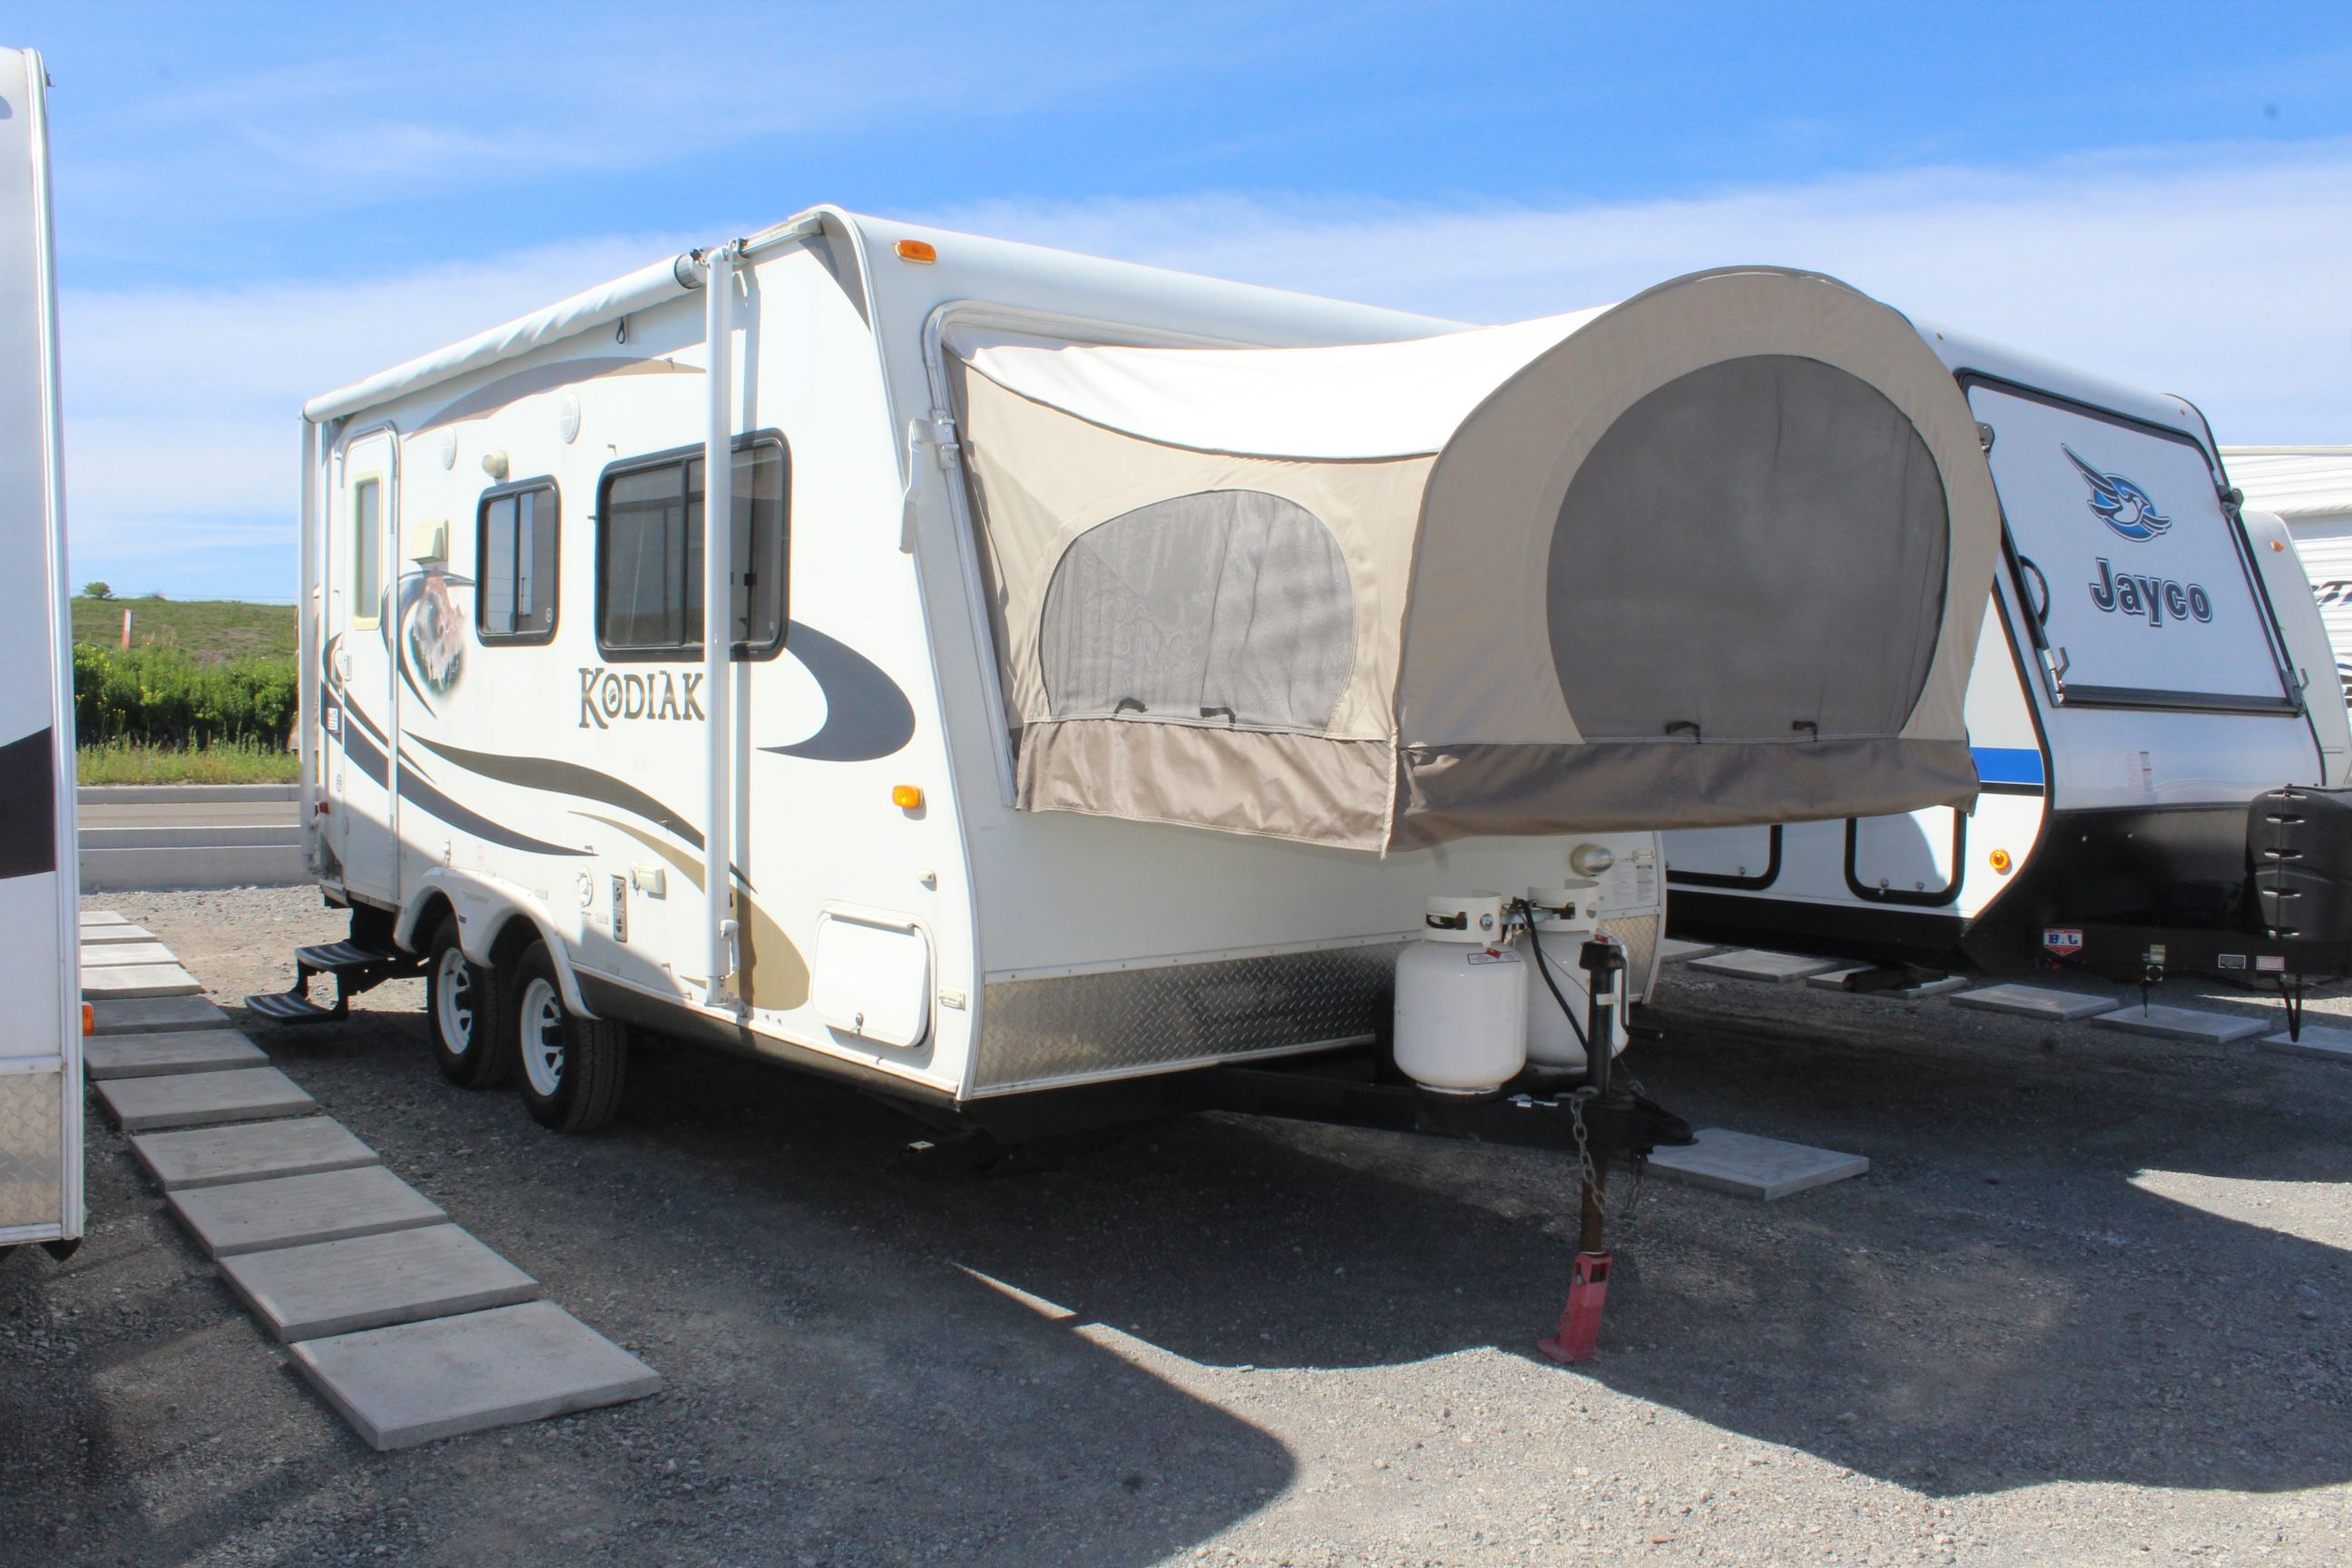 Front and Right side of the Dutchman Kodiak 184, with its Rear entry, two 40 lb Propane Tanks, and Awning.